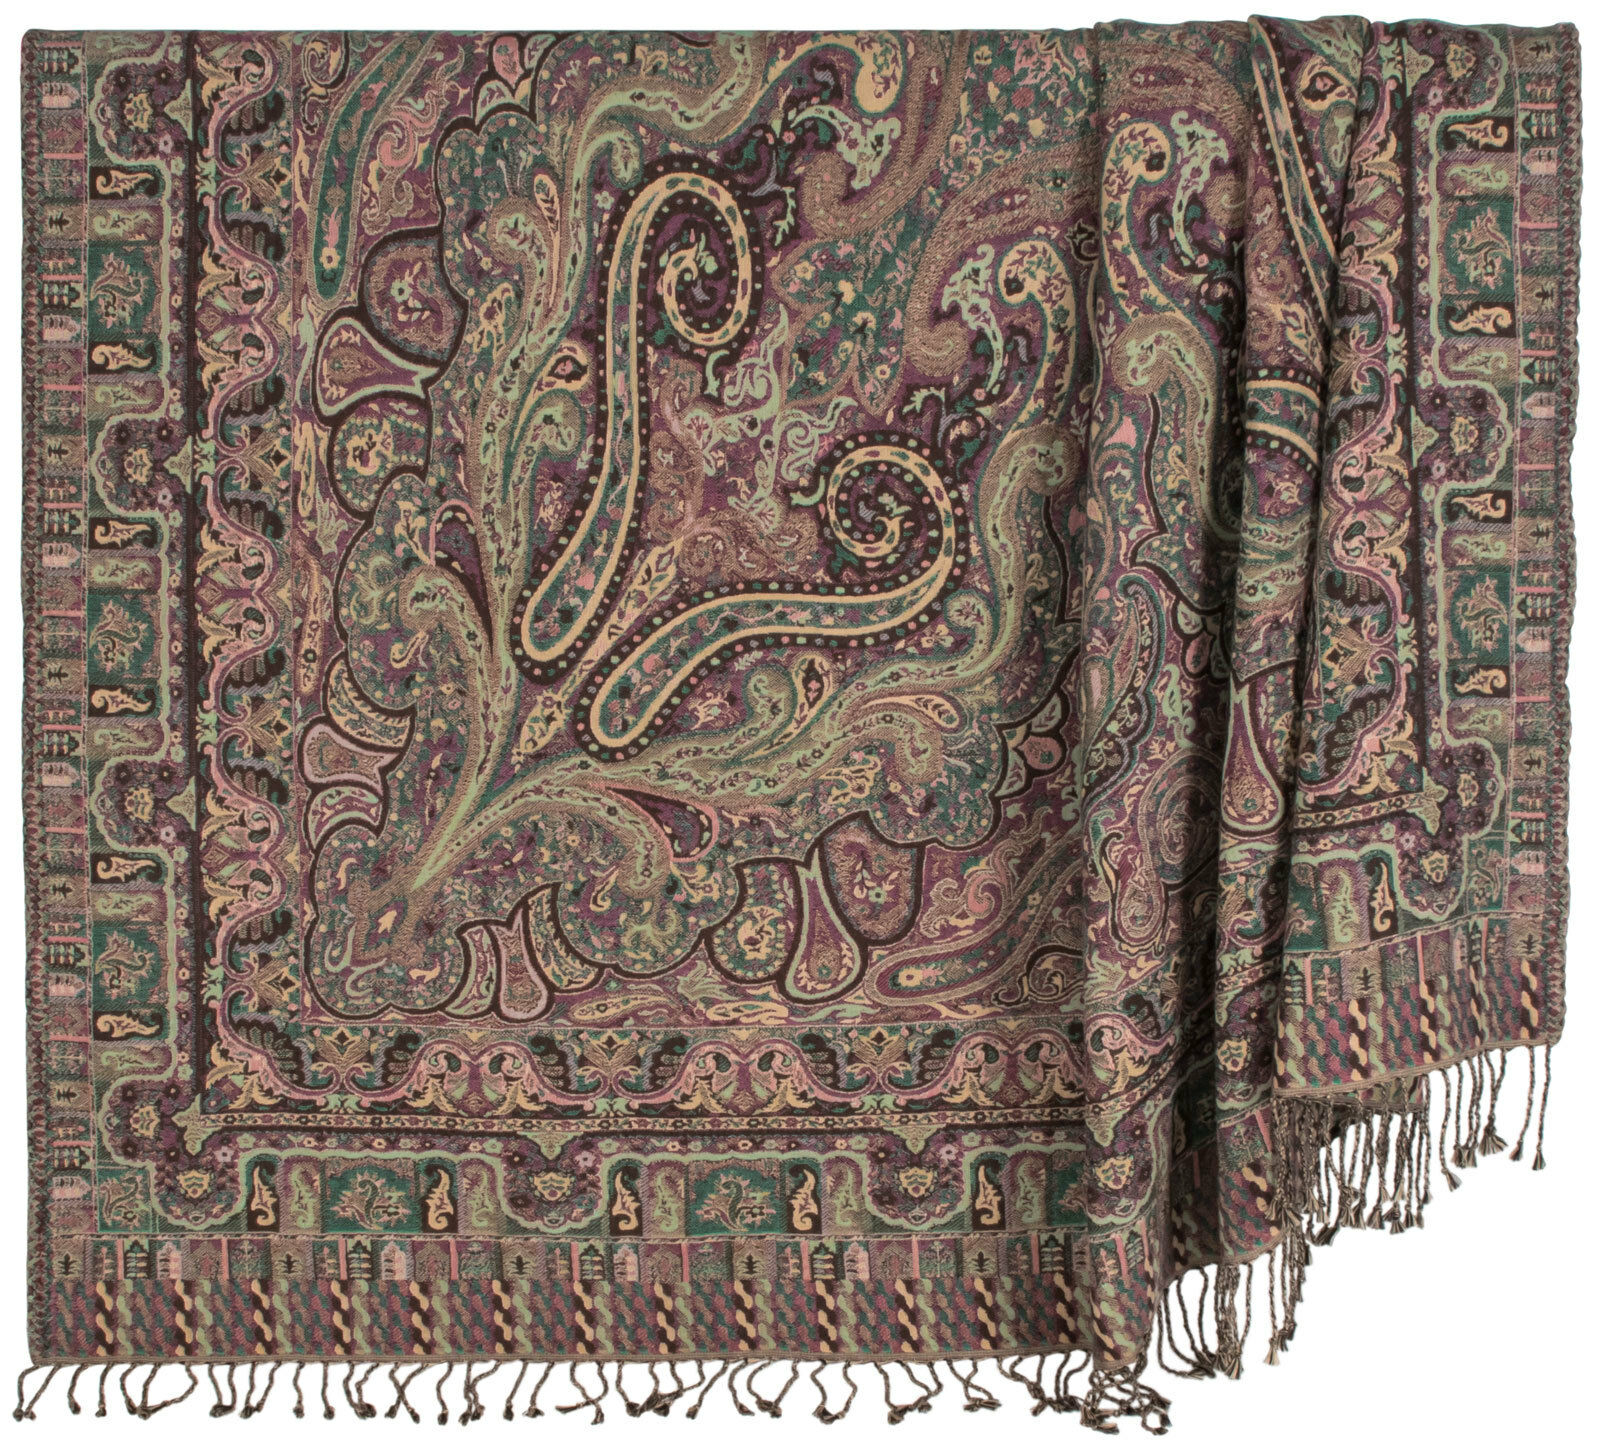 100% Cotton Jade Burgundy & Beige Paisley 50 x70  Throw w  Tassels - Alcott